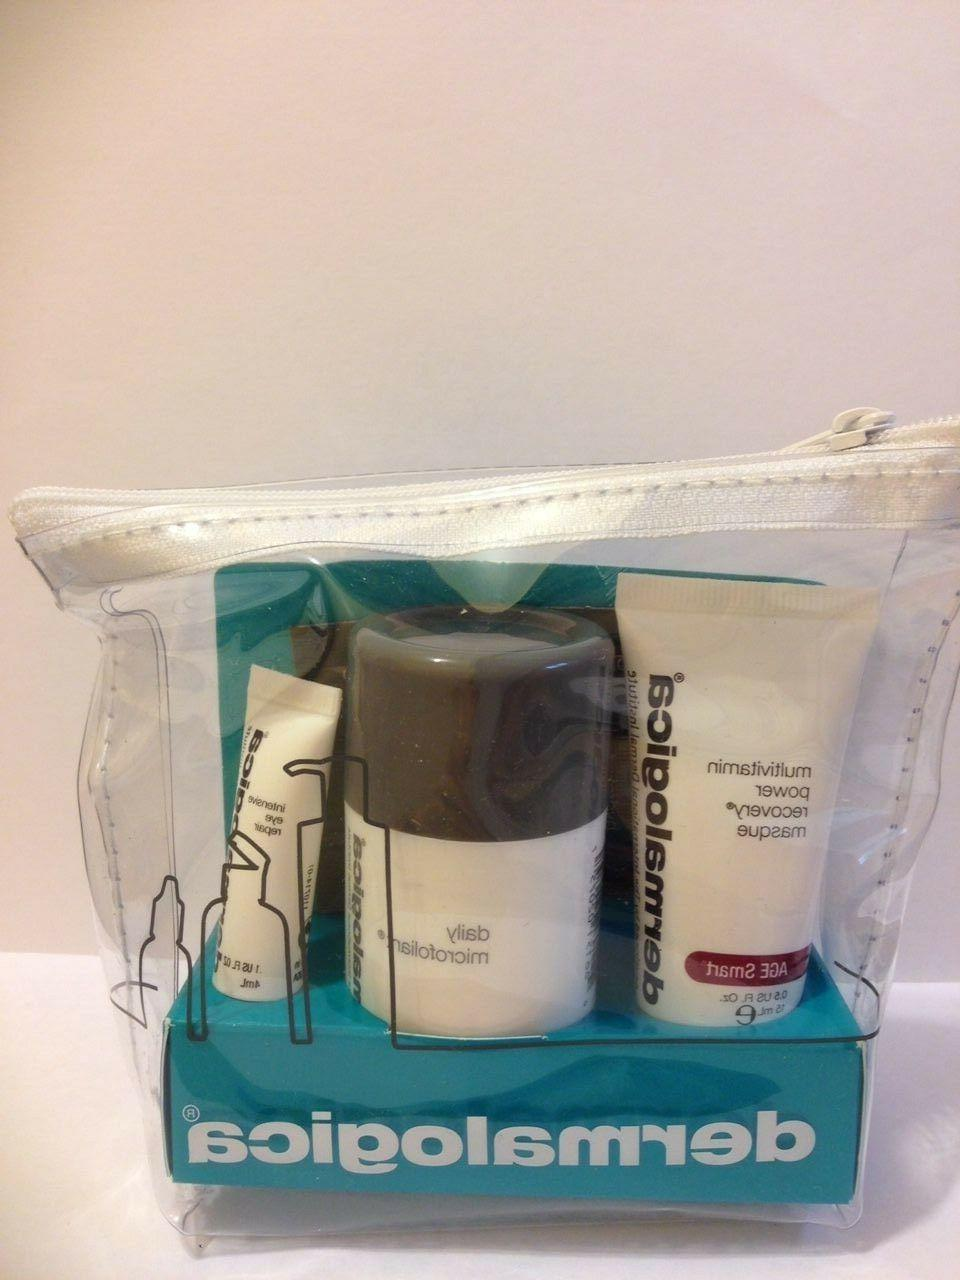 Dermalogica travel kit 3 products:intensive eye,daily microf